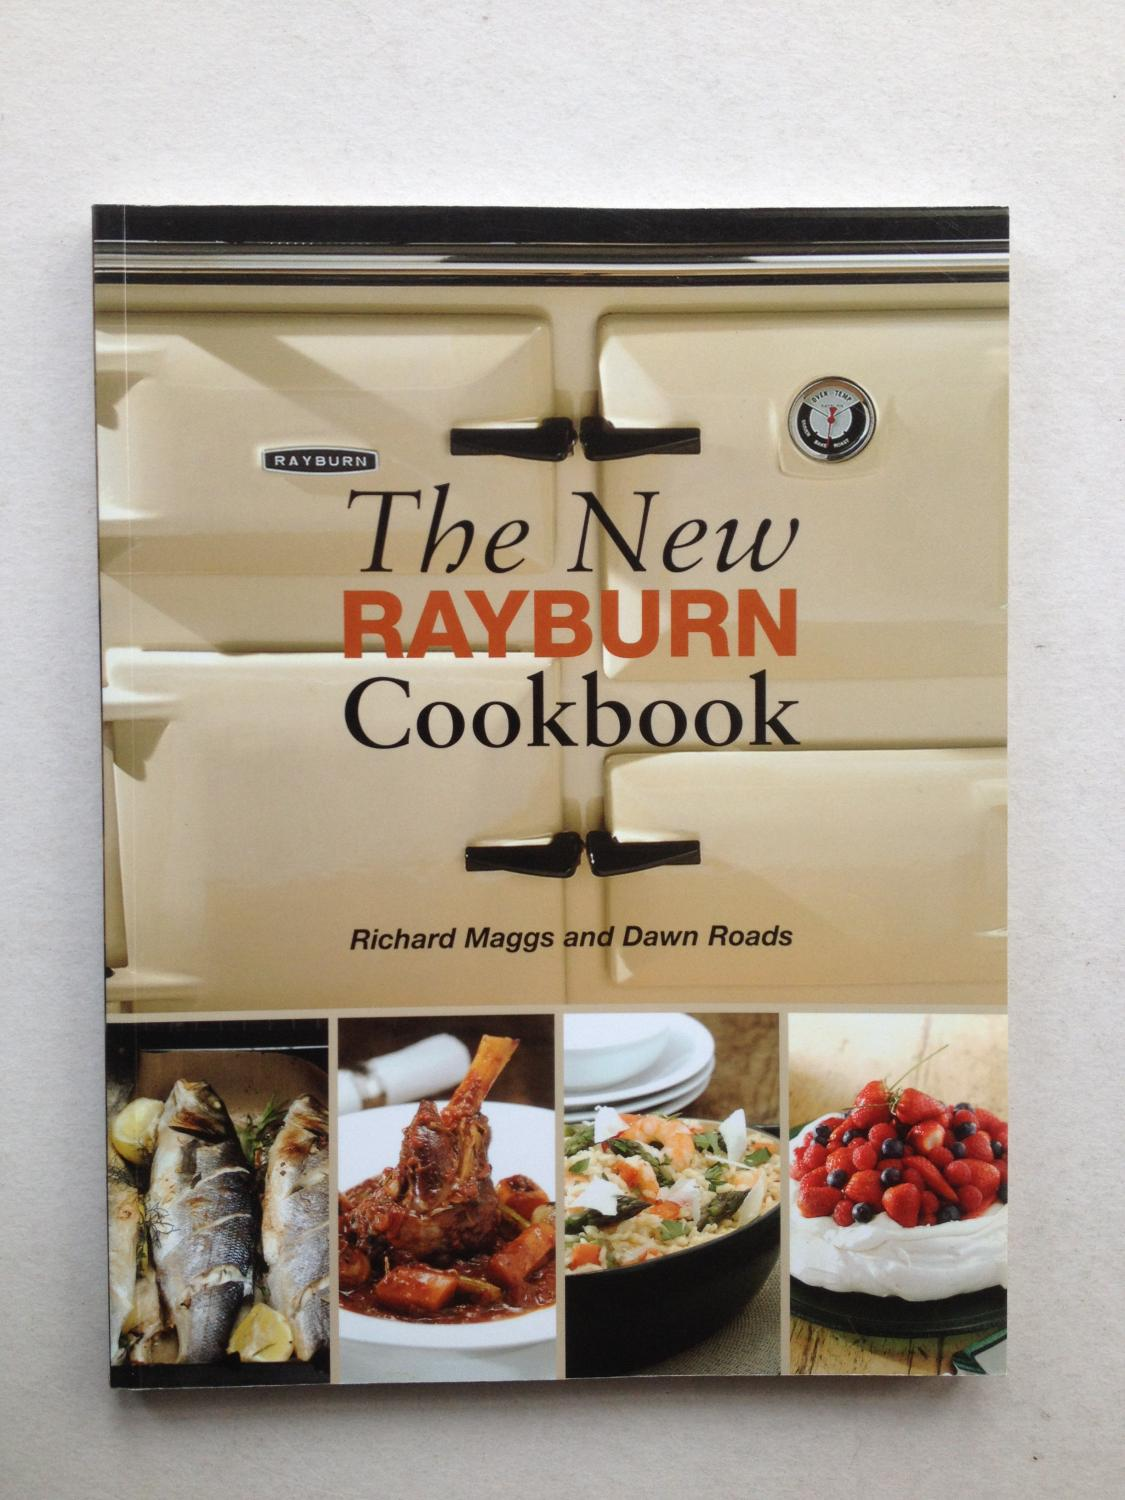 The new rayburn cookbook by richard maggs dawn roads absolute the new rayburn cookbook richard maggs dawn roads forumfinder Choice Image